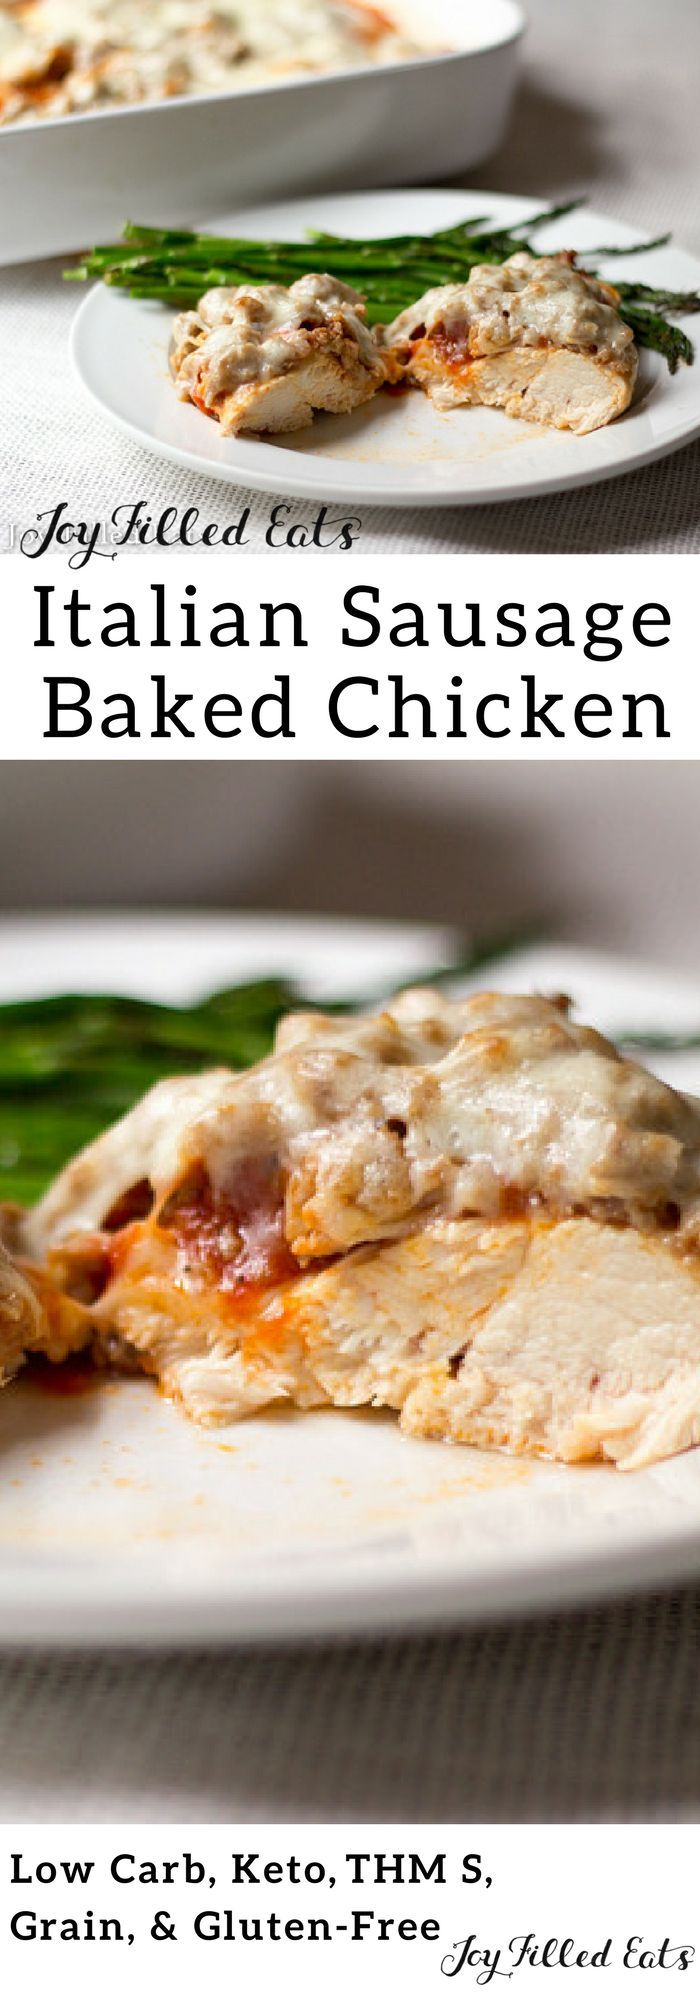 Italian Sausage Baked Chicken - Low Carb, Keto, Gluten-Free, Grain-Free, THM S - This Italian Sausage Baked Chicken only takes 35 minutes & 5 ingredients! For a weeknight dinner, it is impressive.